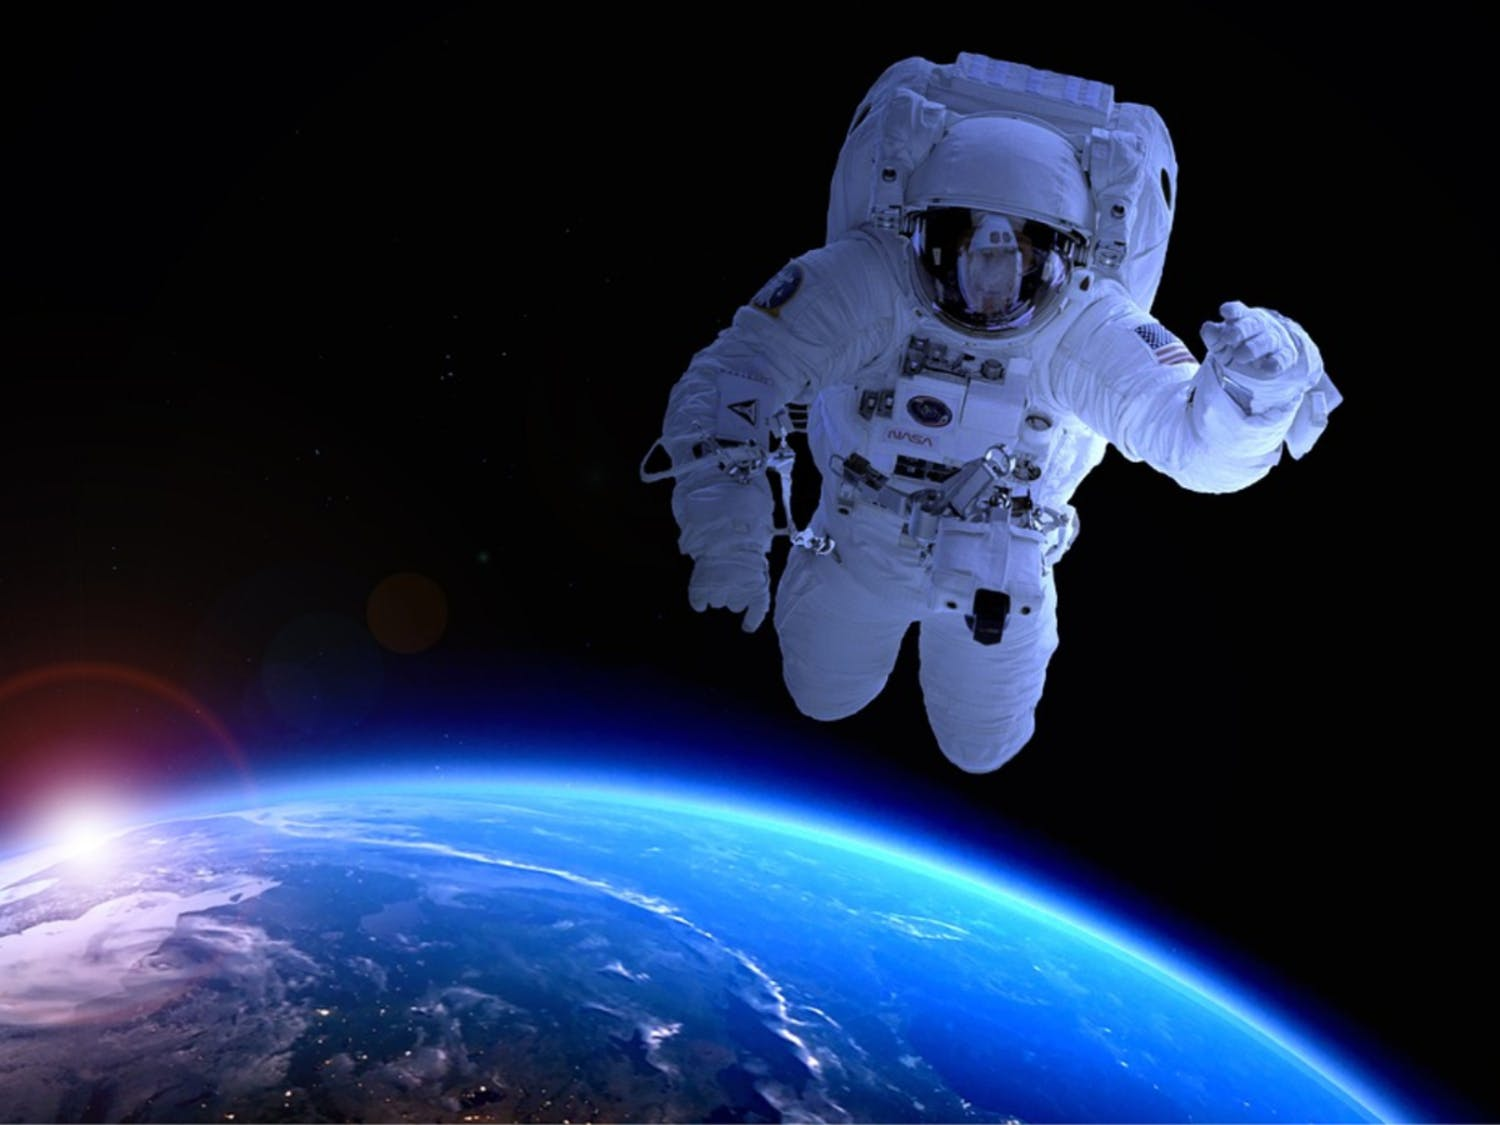 Until June 30, students and alumni can register for Space Medicine, a six-week online learning experience set to debut on Coursera later this summer.